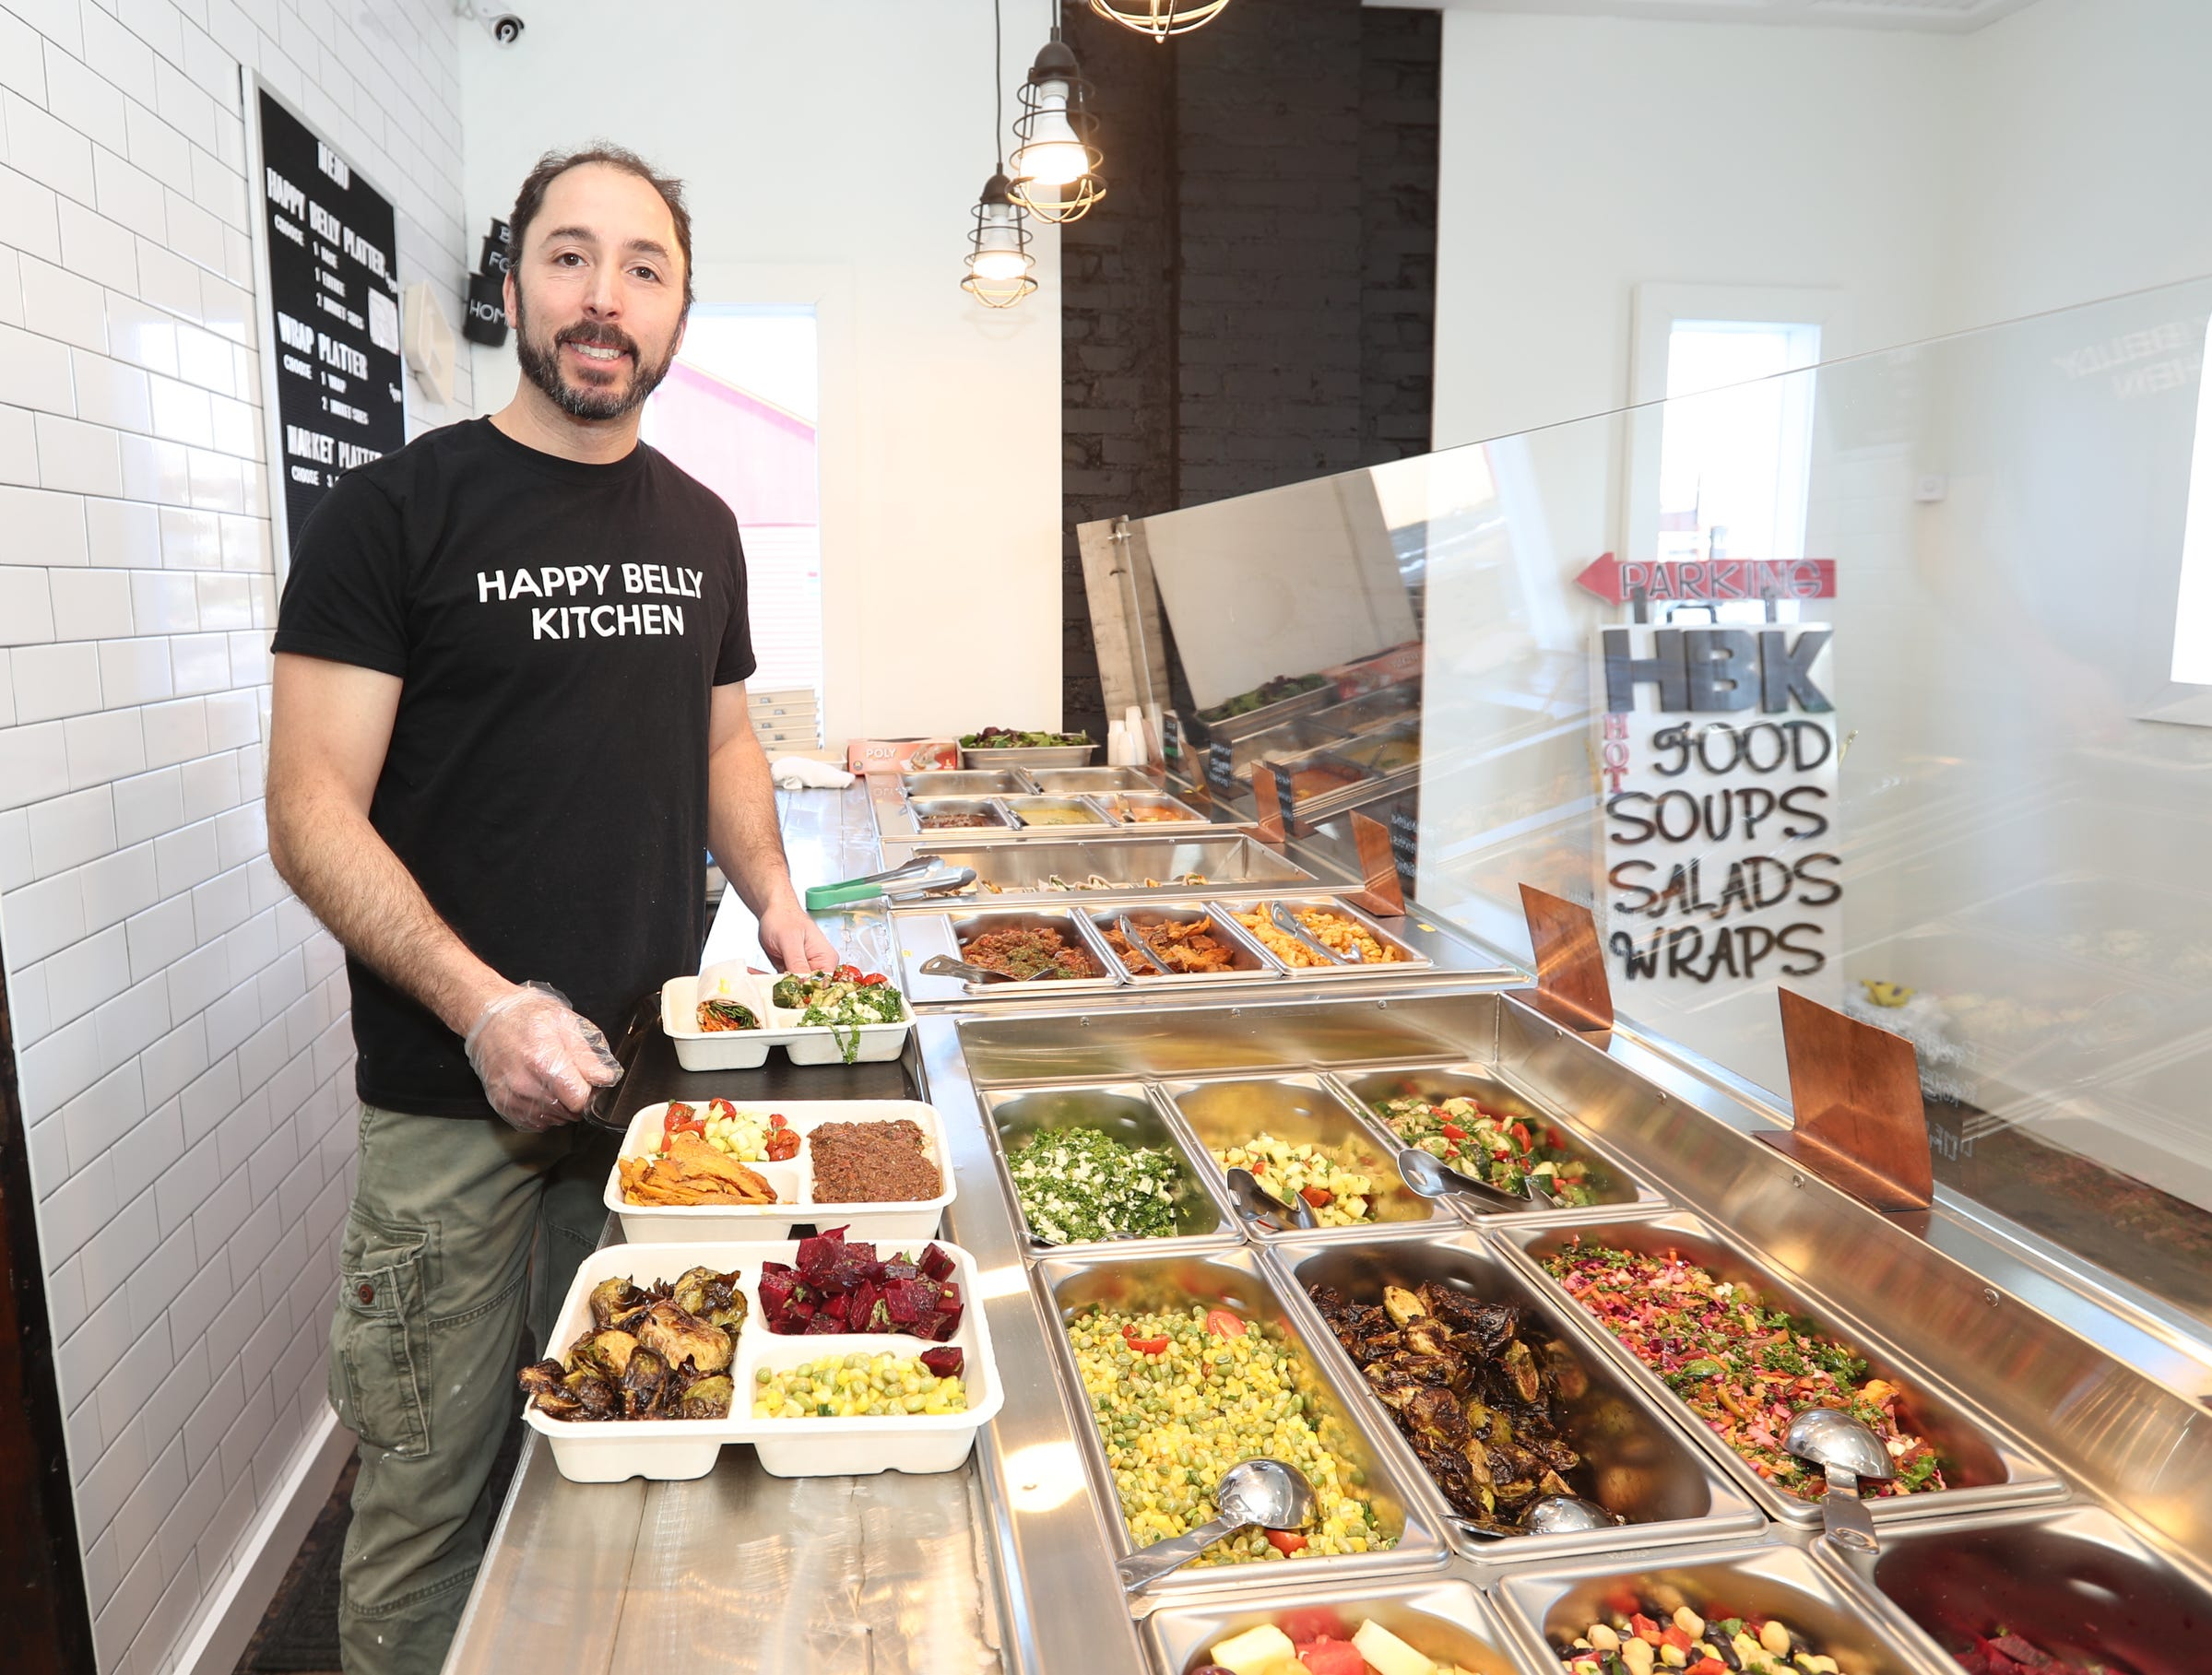 Ilan Nifco, co-owner, prepares lunches at Happy Belly Kitchen in Sloatsburg on Wednesday, February 13, 2019.